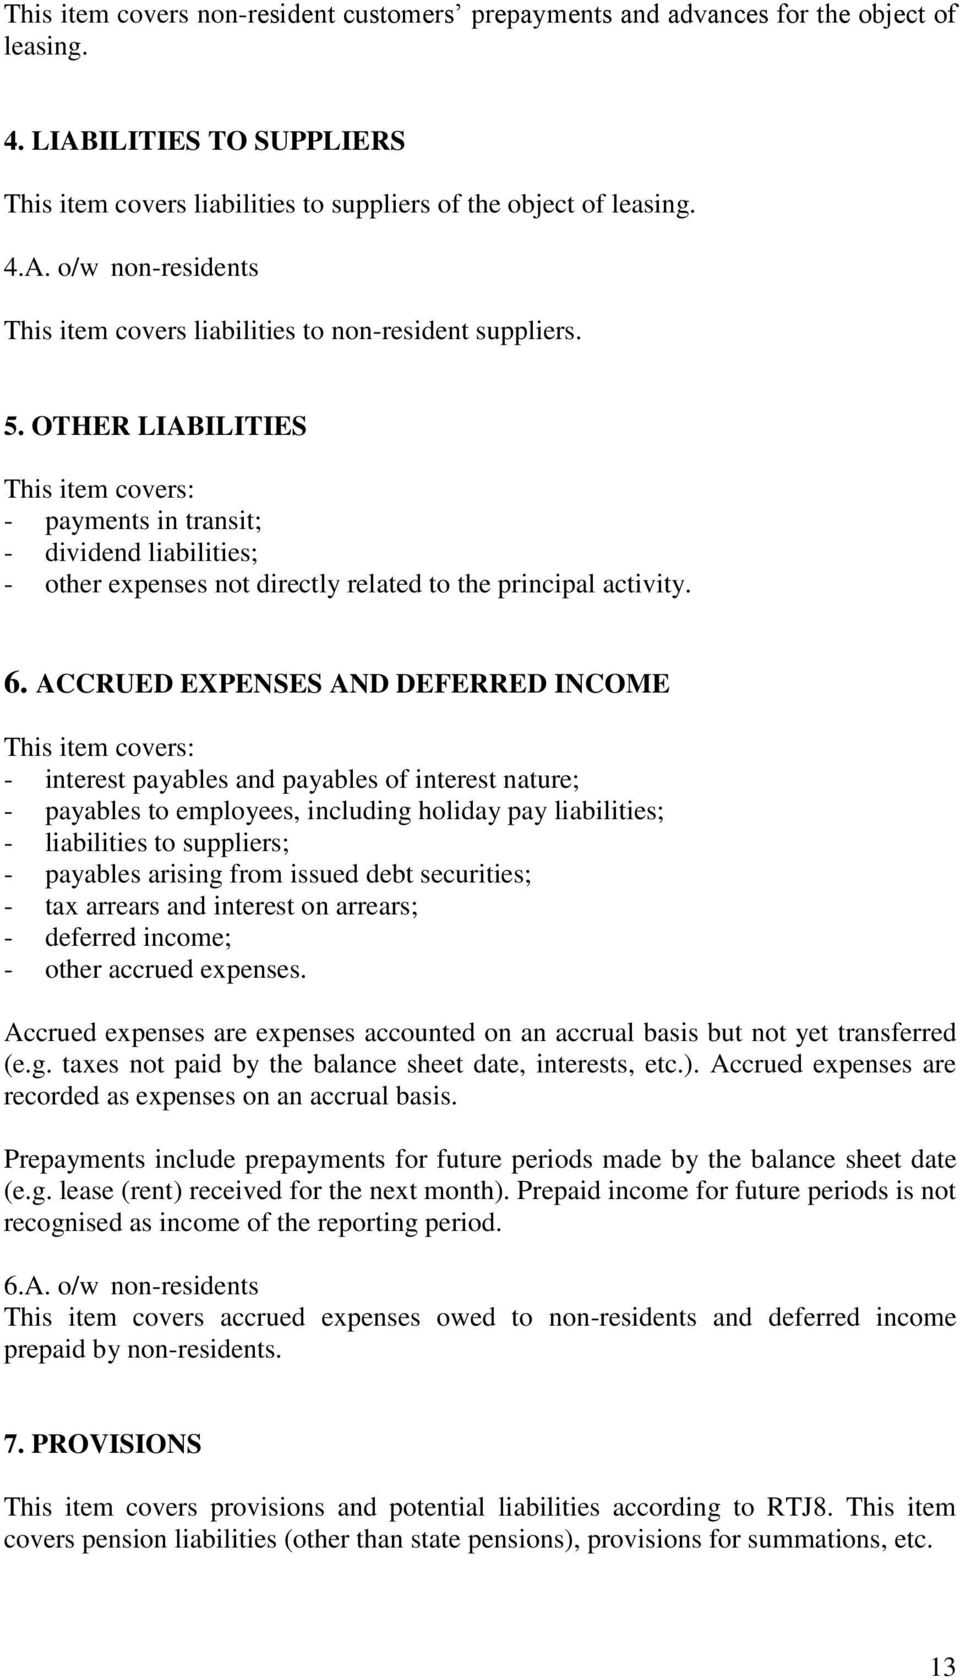 ACCRUED EXPENSES AND DEFERRED INCOME This item covers: - interest payables and payables of interest nature; - payables to employees, including holiday pay liabilities; - liabilities to suppliers; -